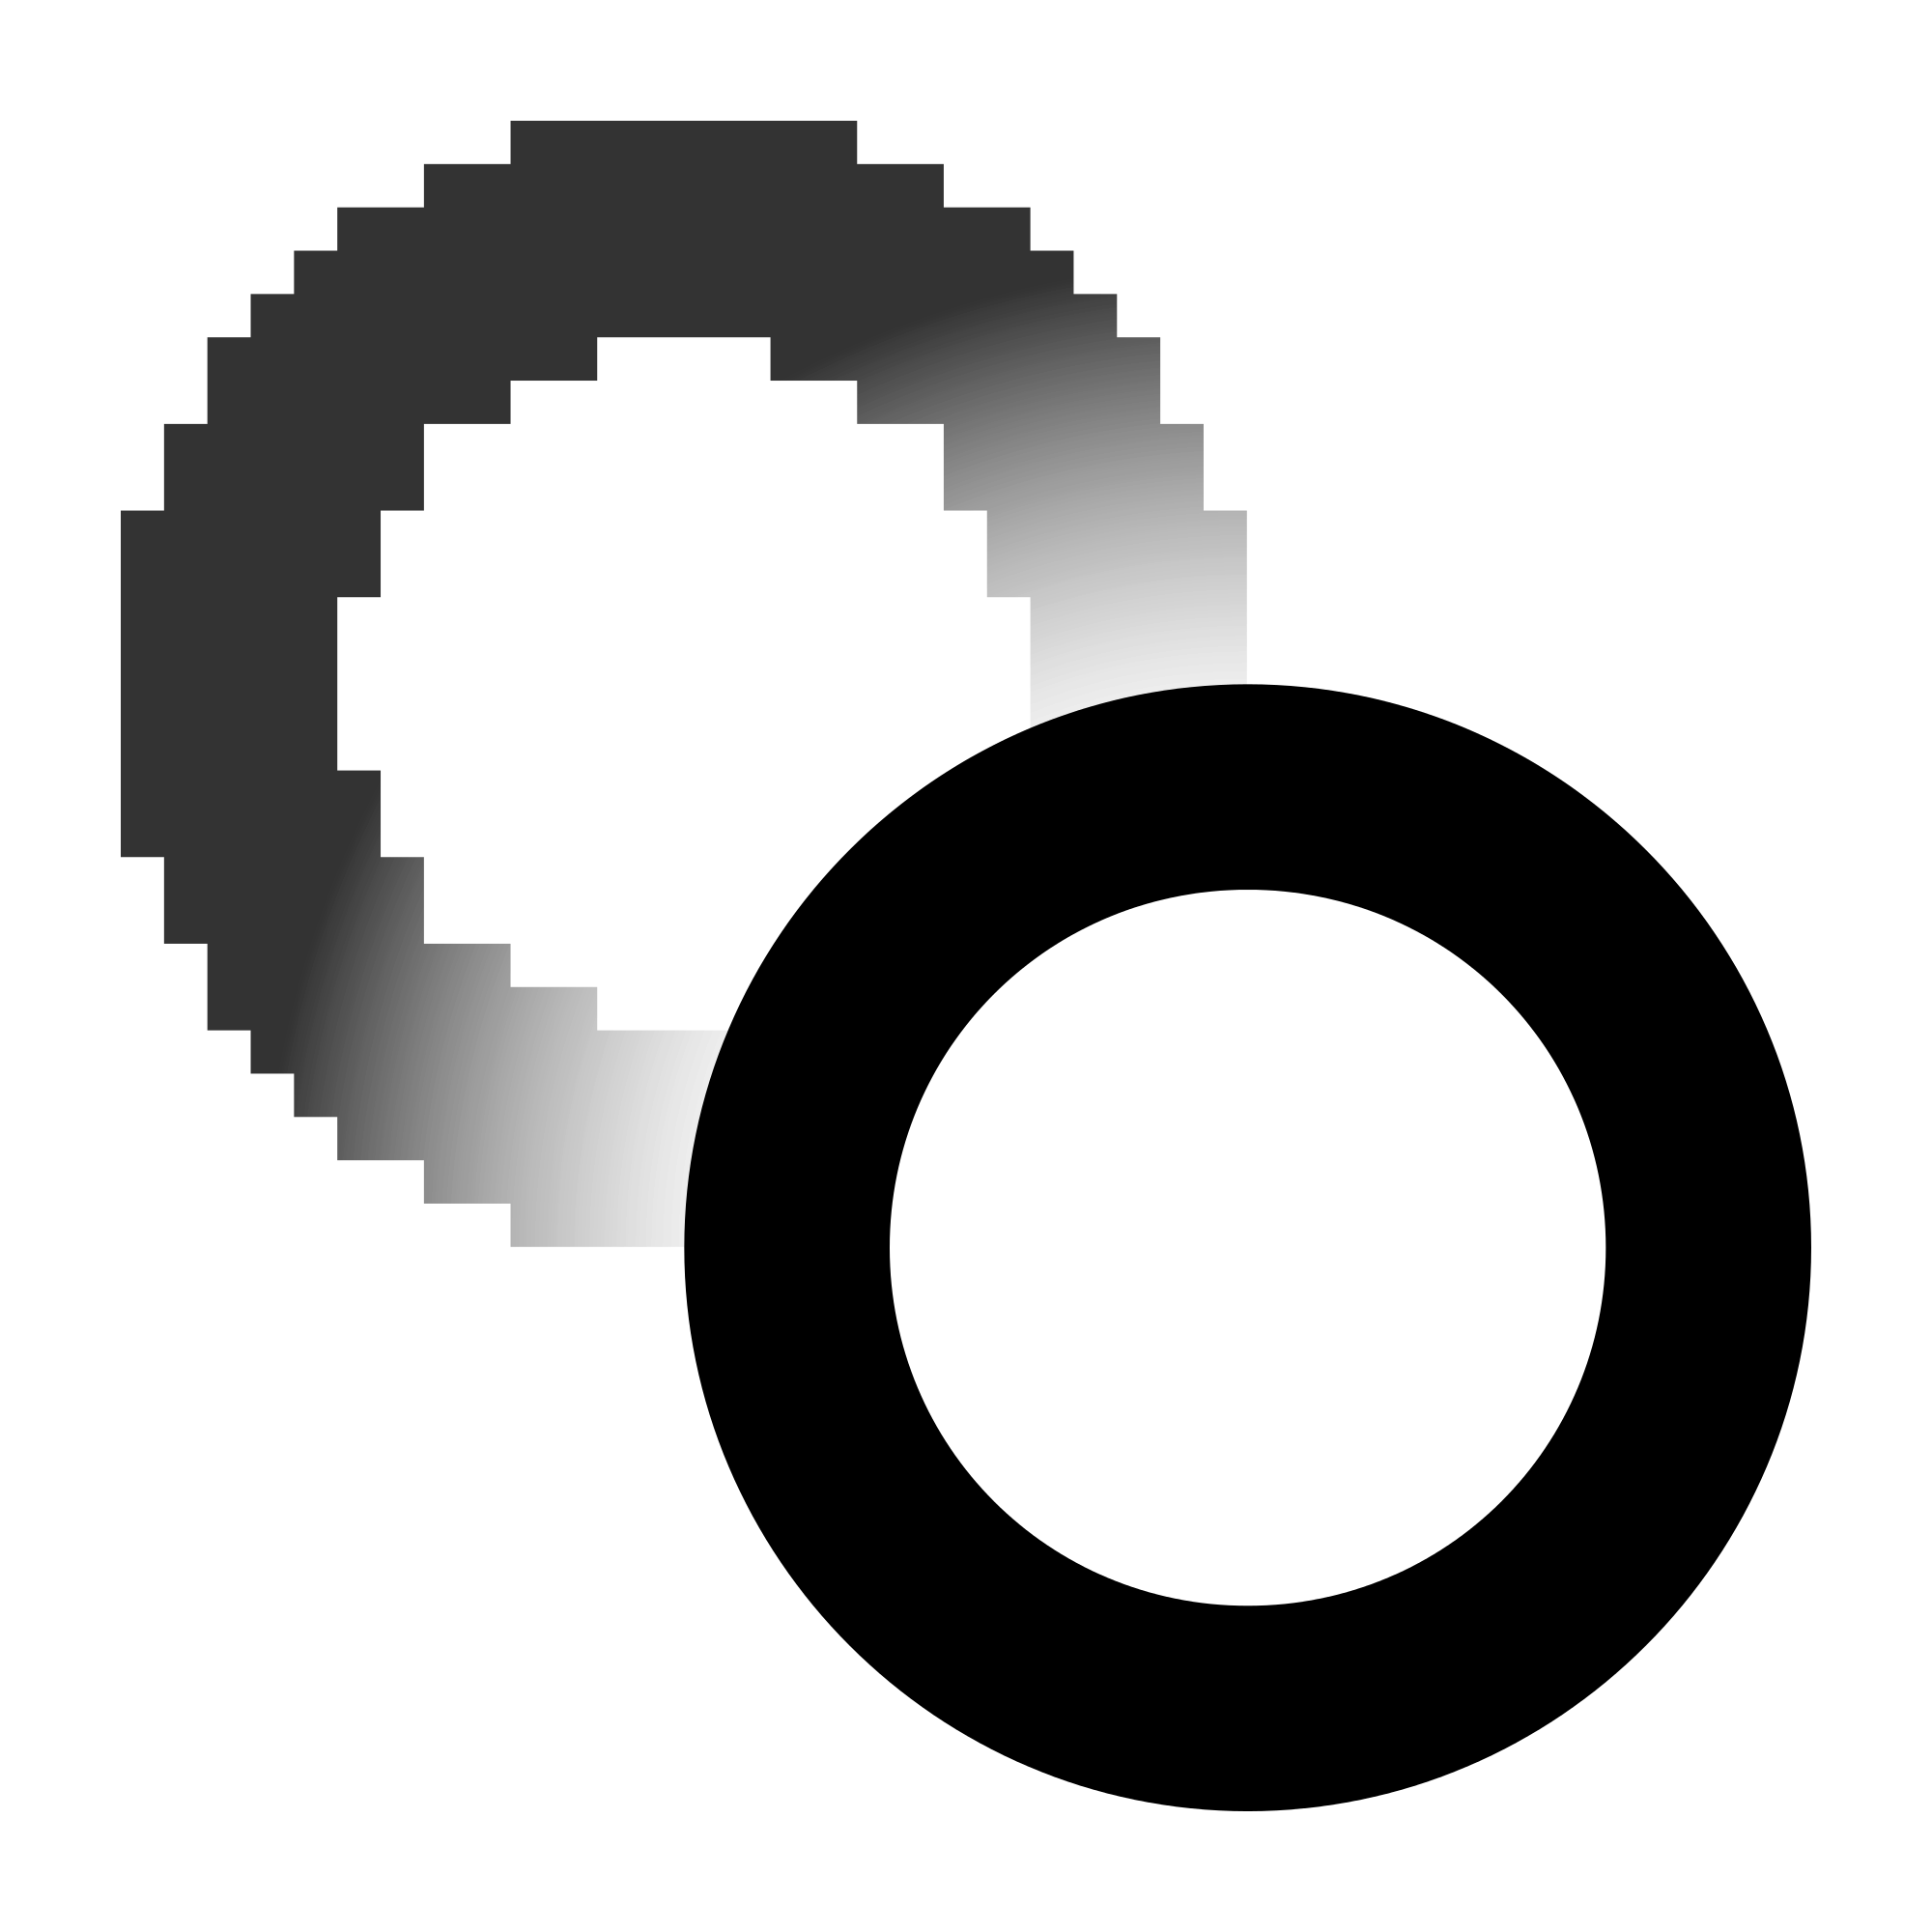 Svg conversion. File suggestion wikimedia commons